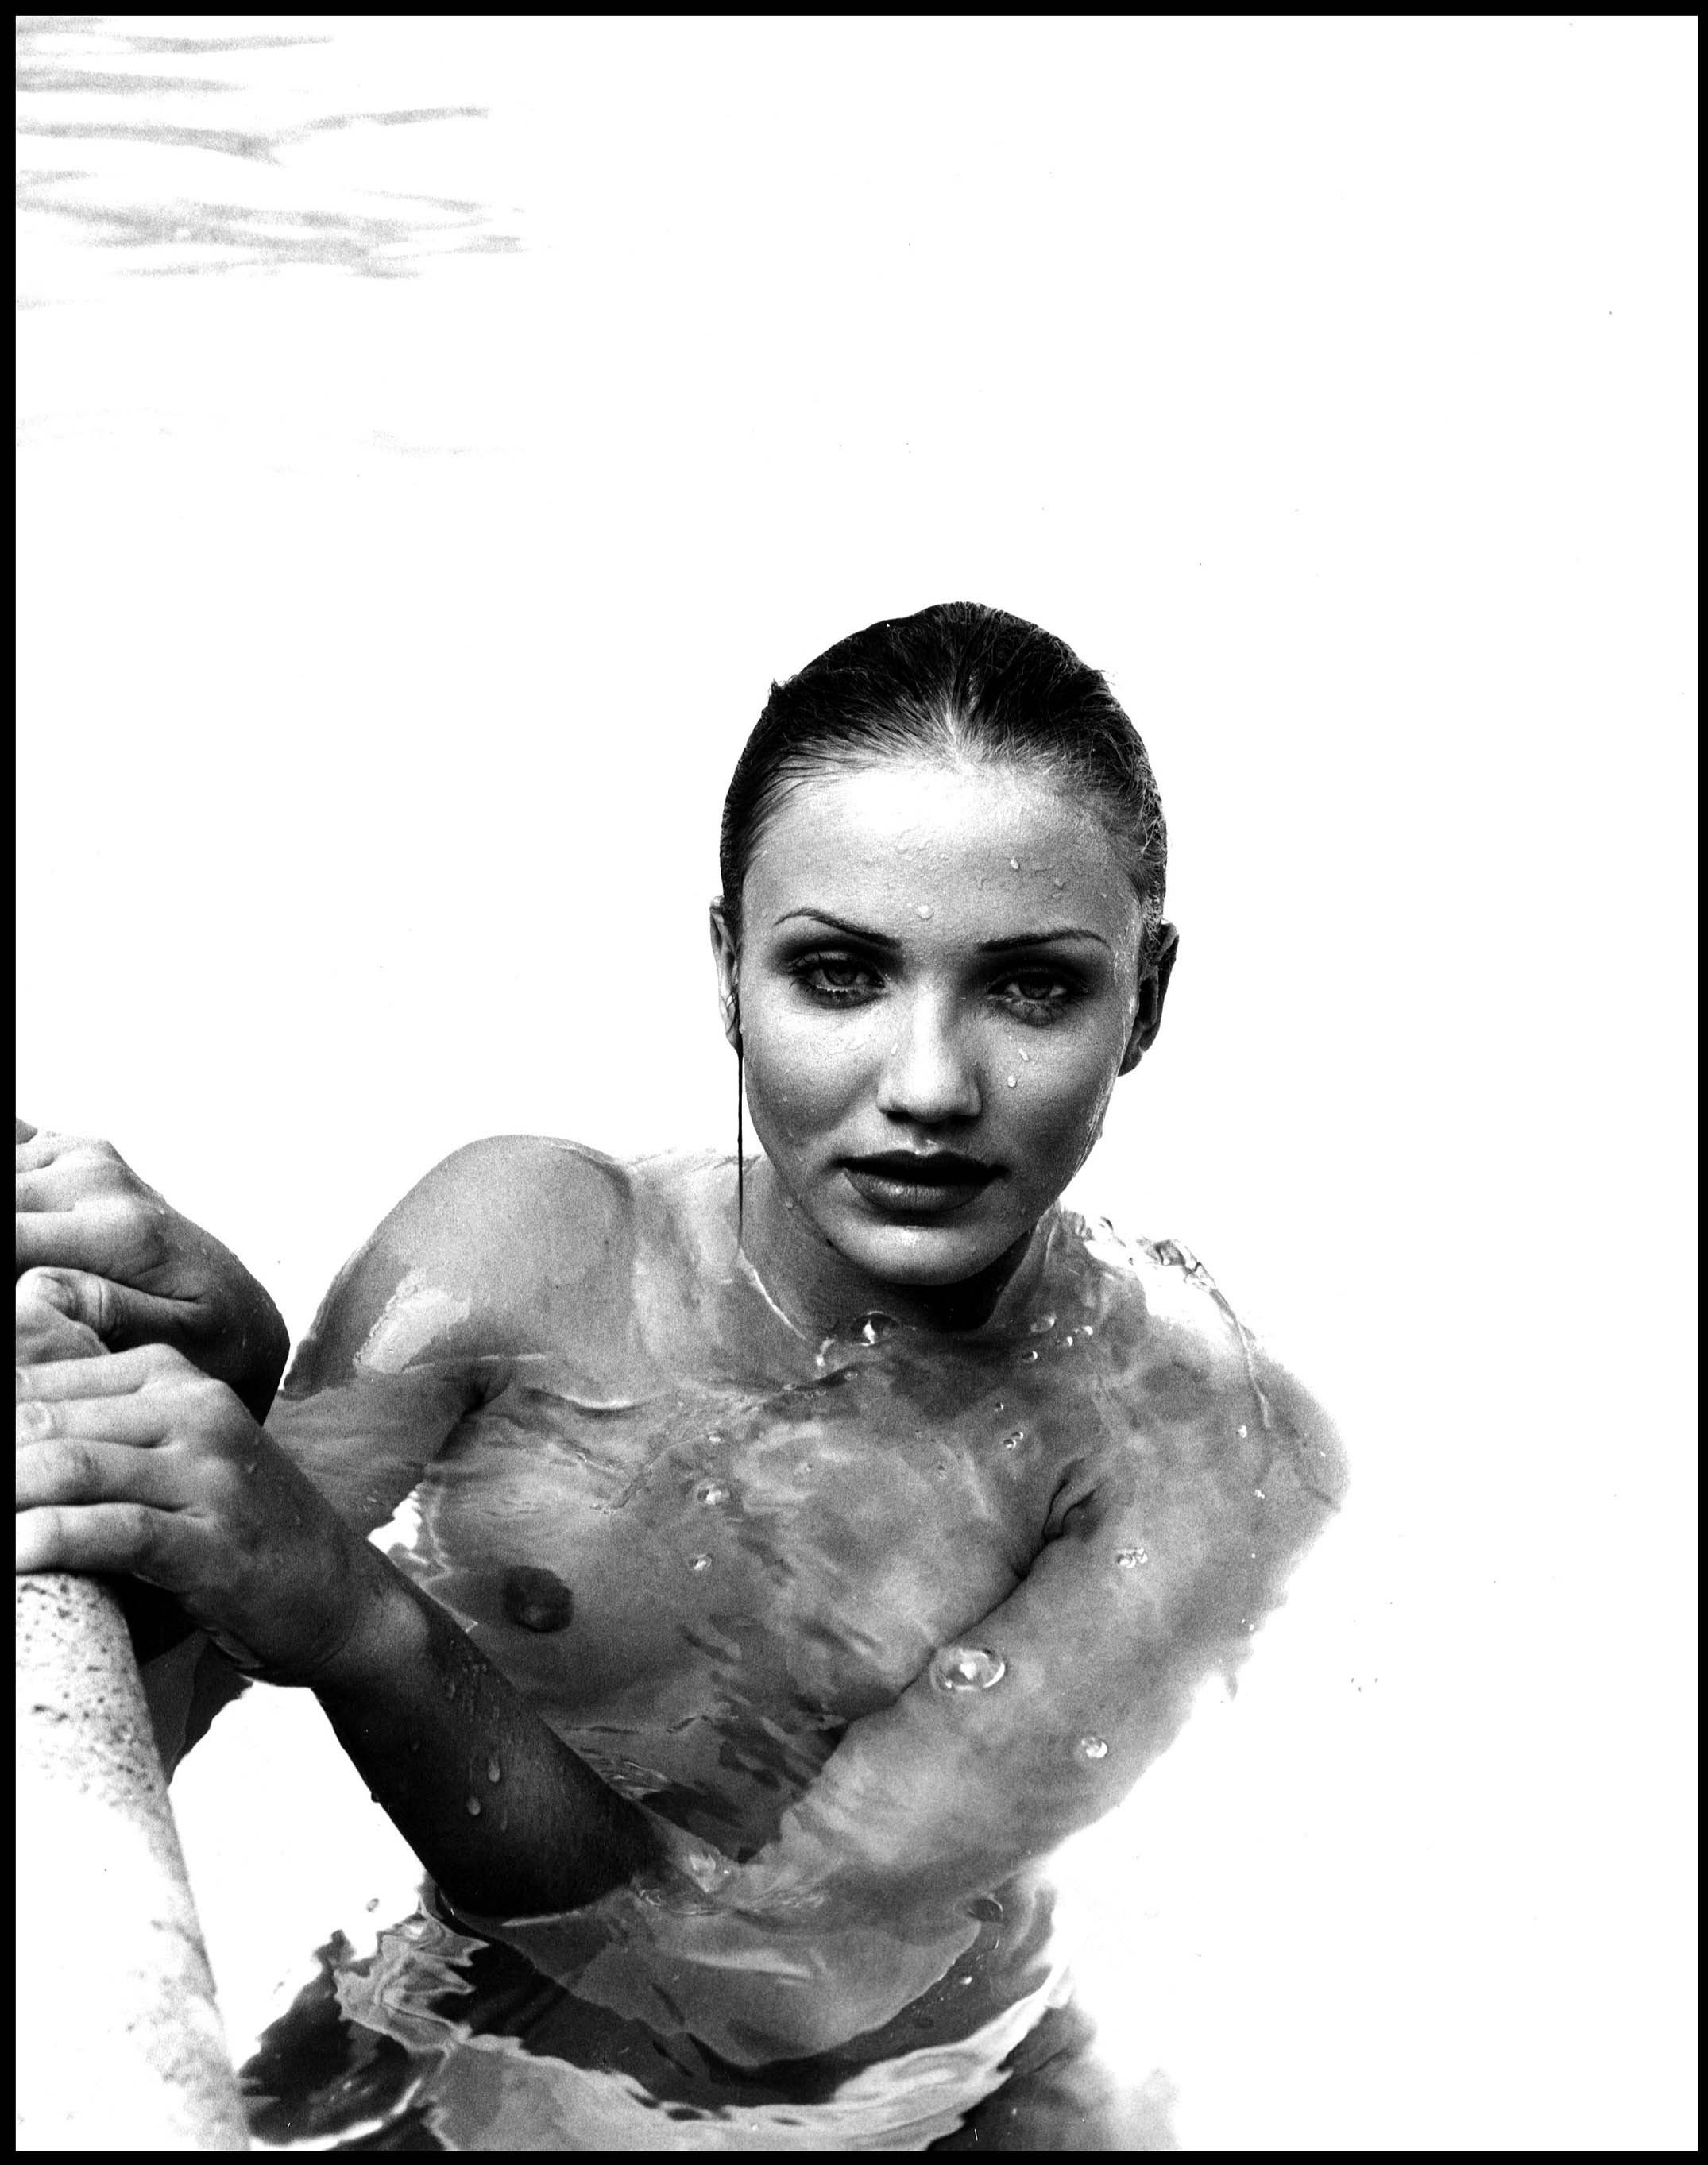 55400_Cameron_Diaz_-_Topless_photoshoot_in_a_swimming_pool0007_123_539lo.jpg